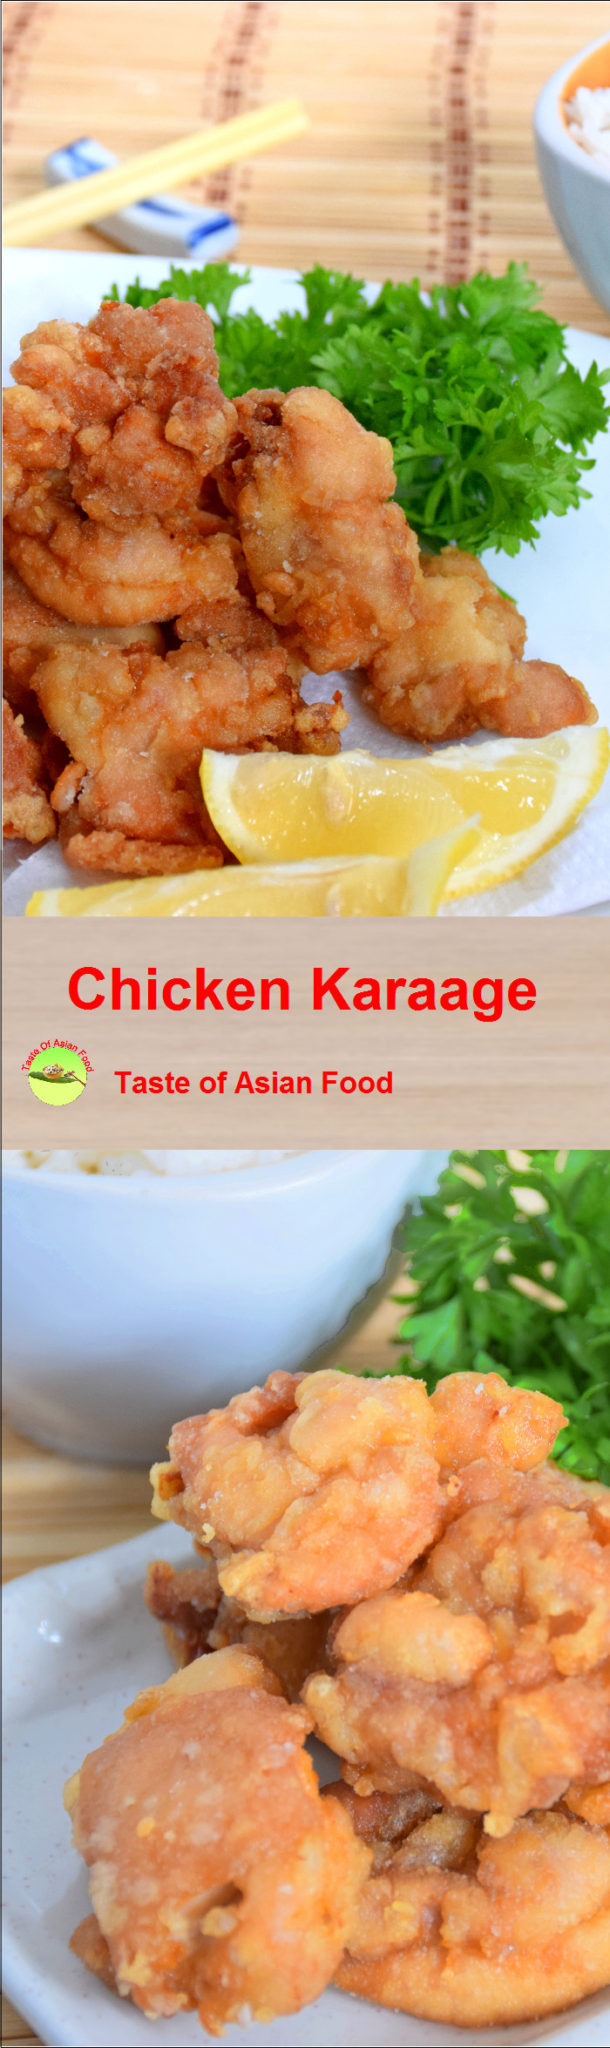 chicken karaage recipe pin